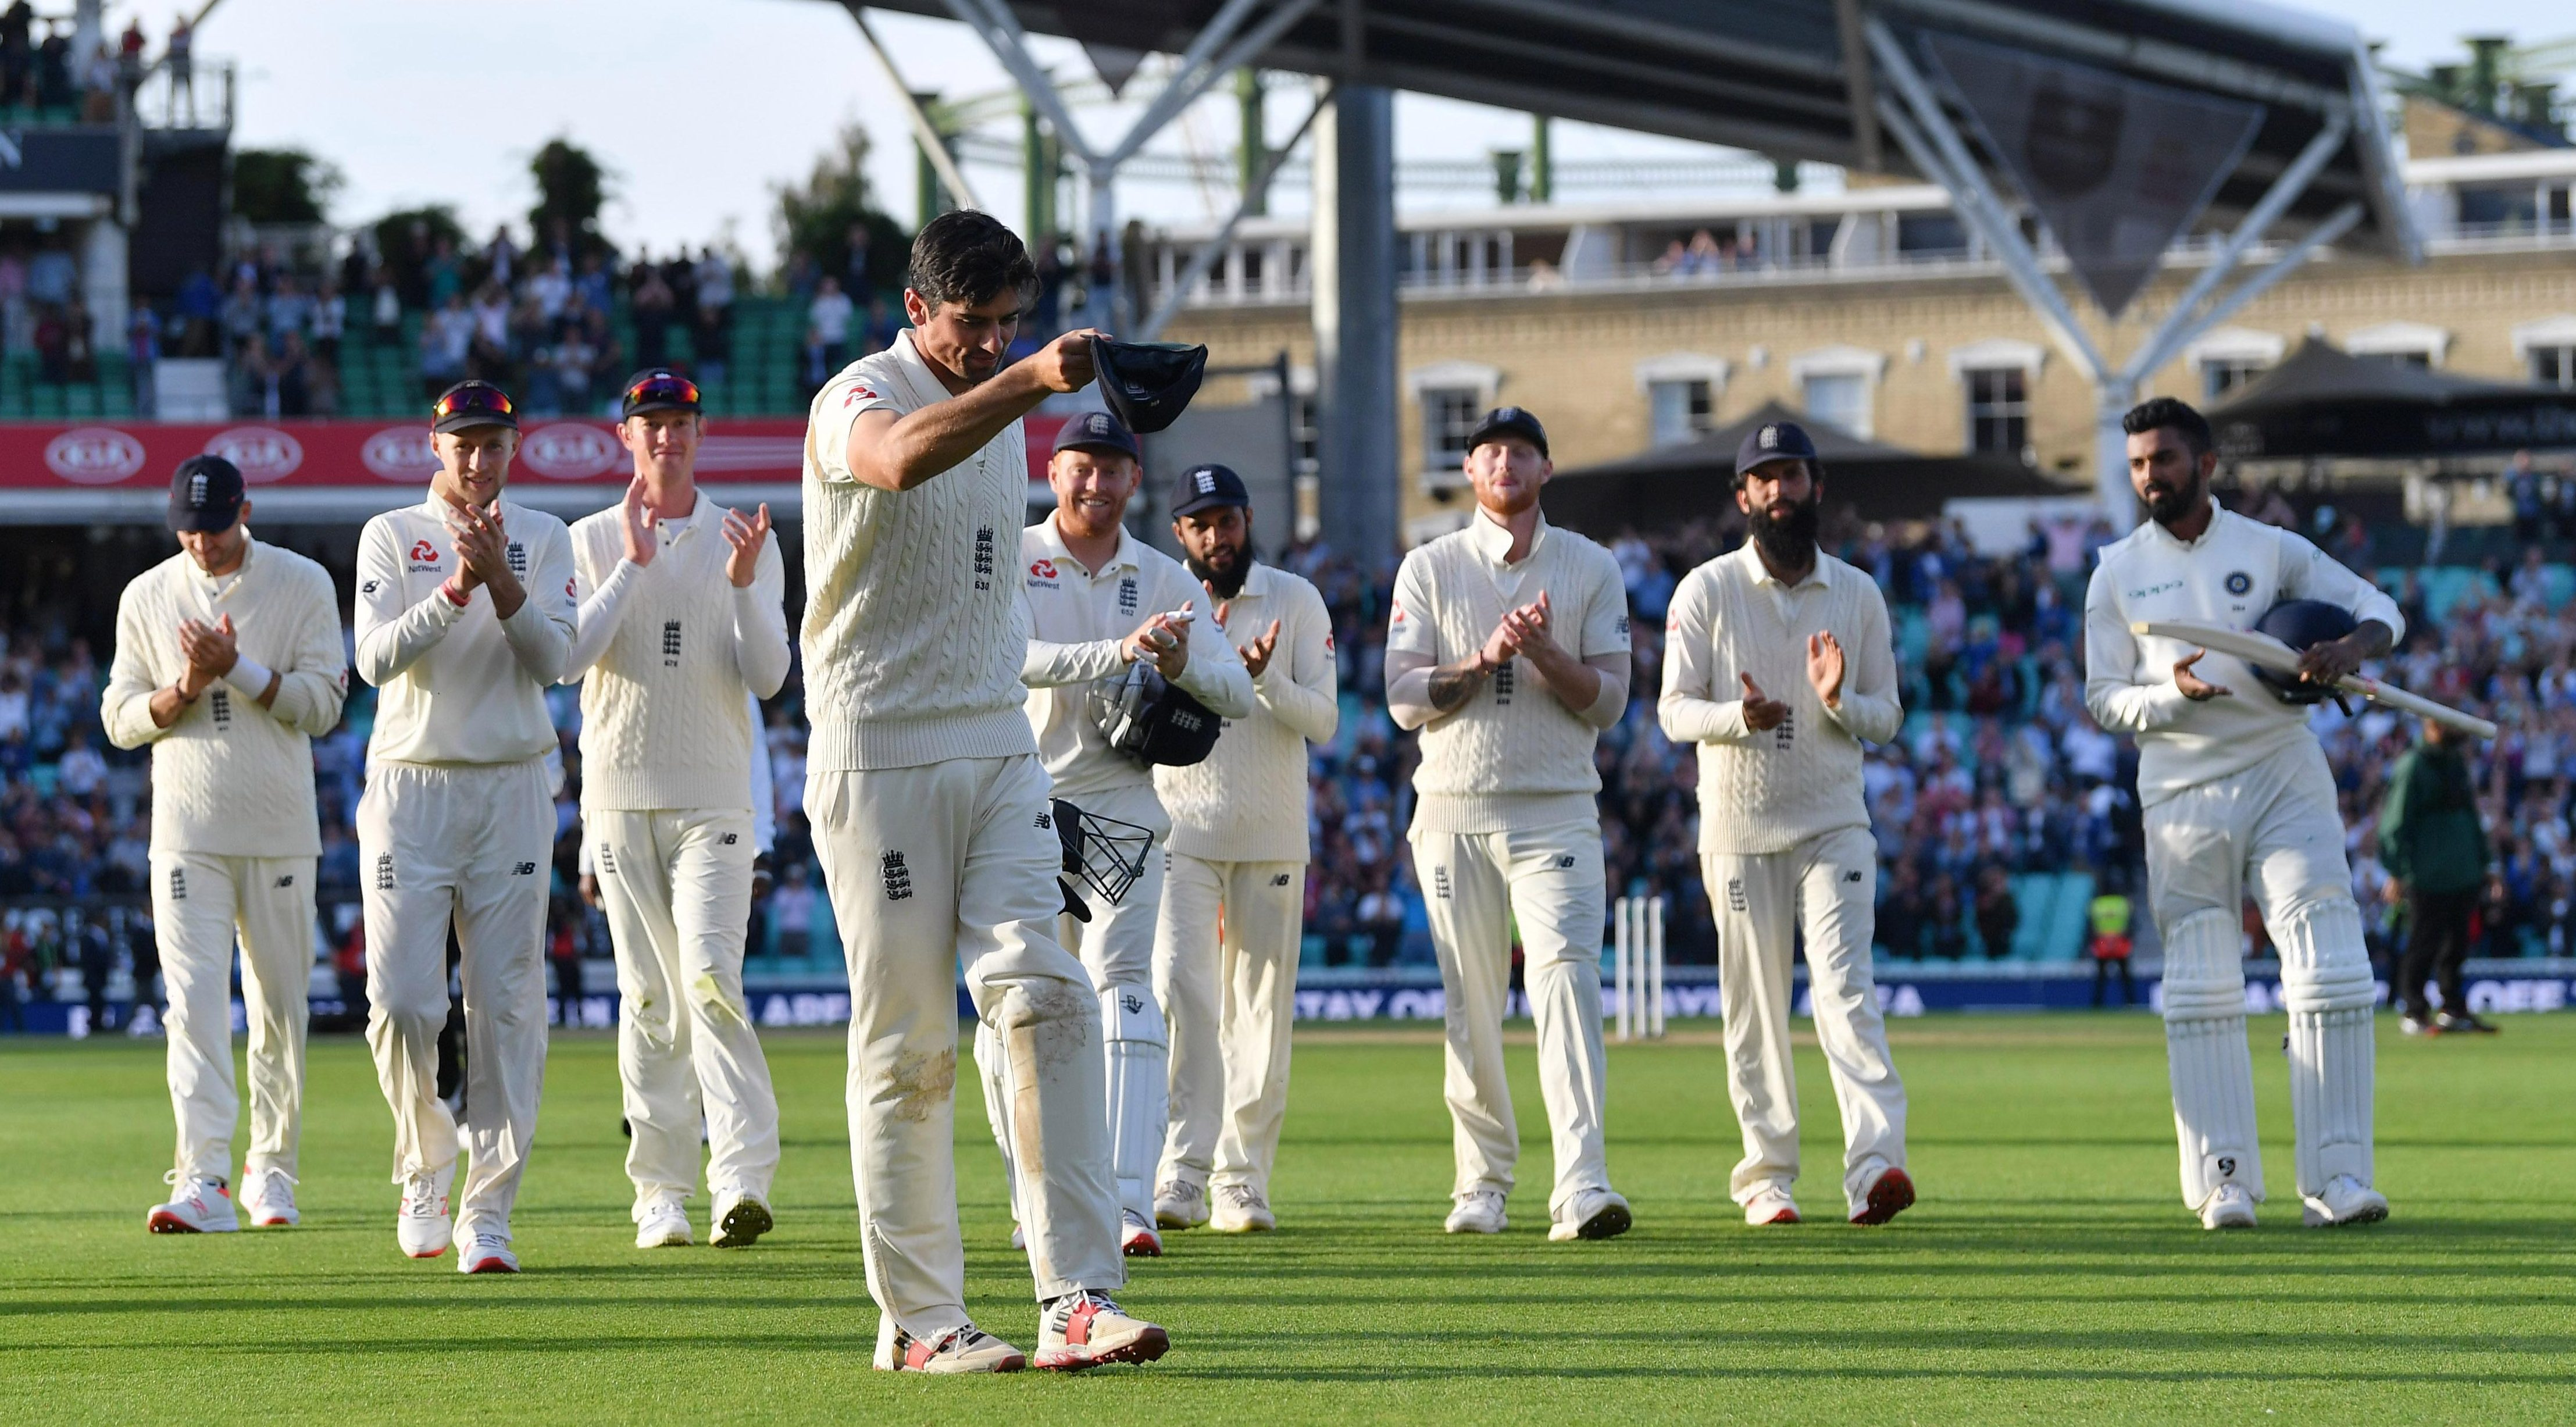 Day four of the Fifth Test belonged to Cook, who led the two teams off at the end of play